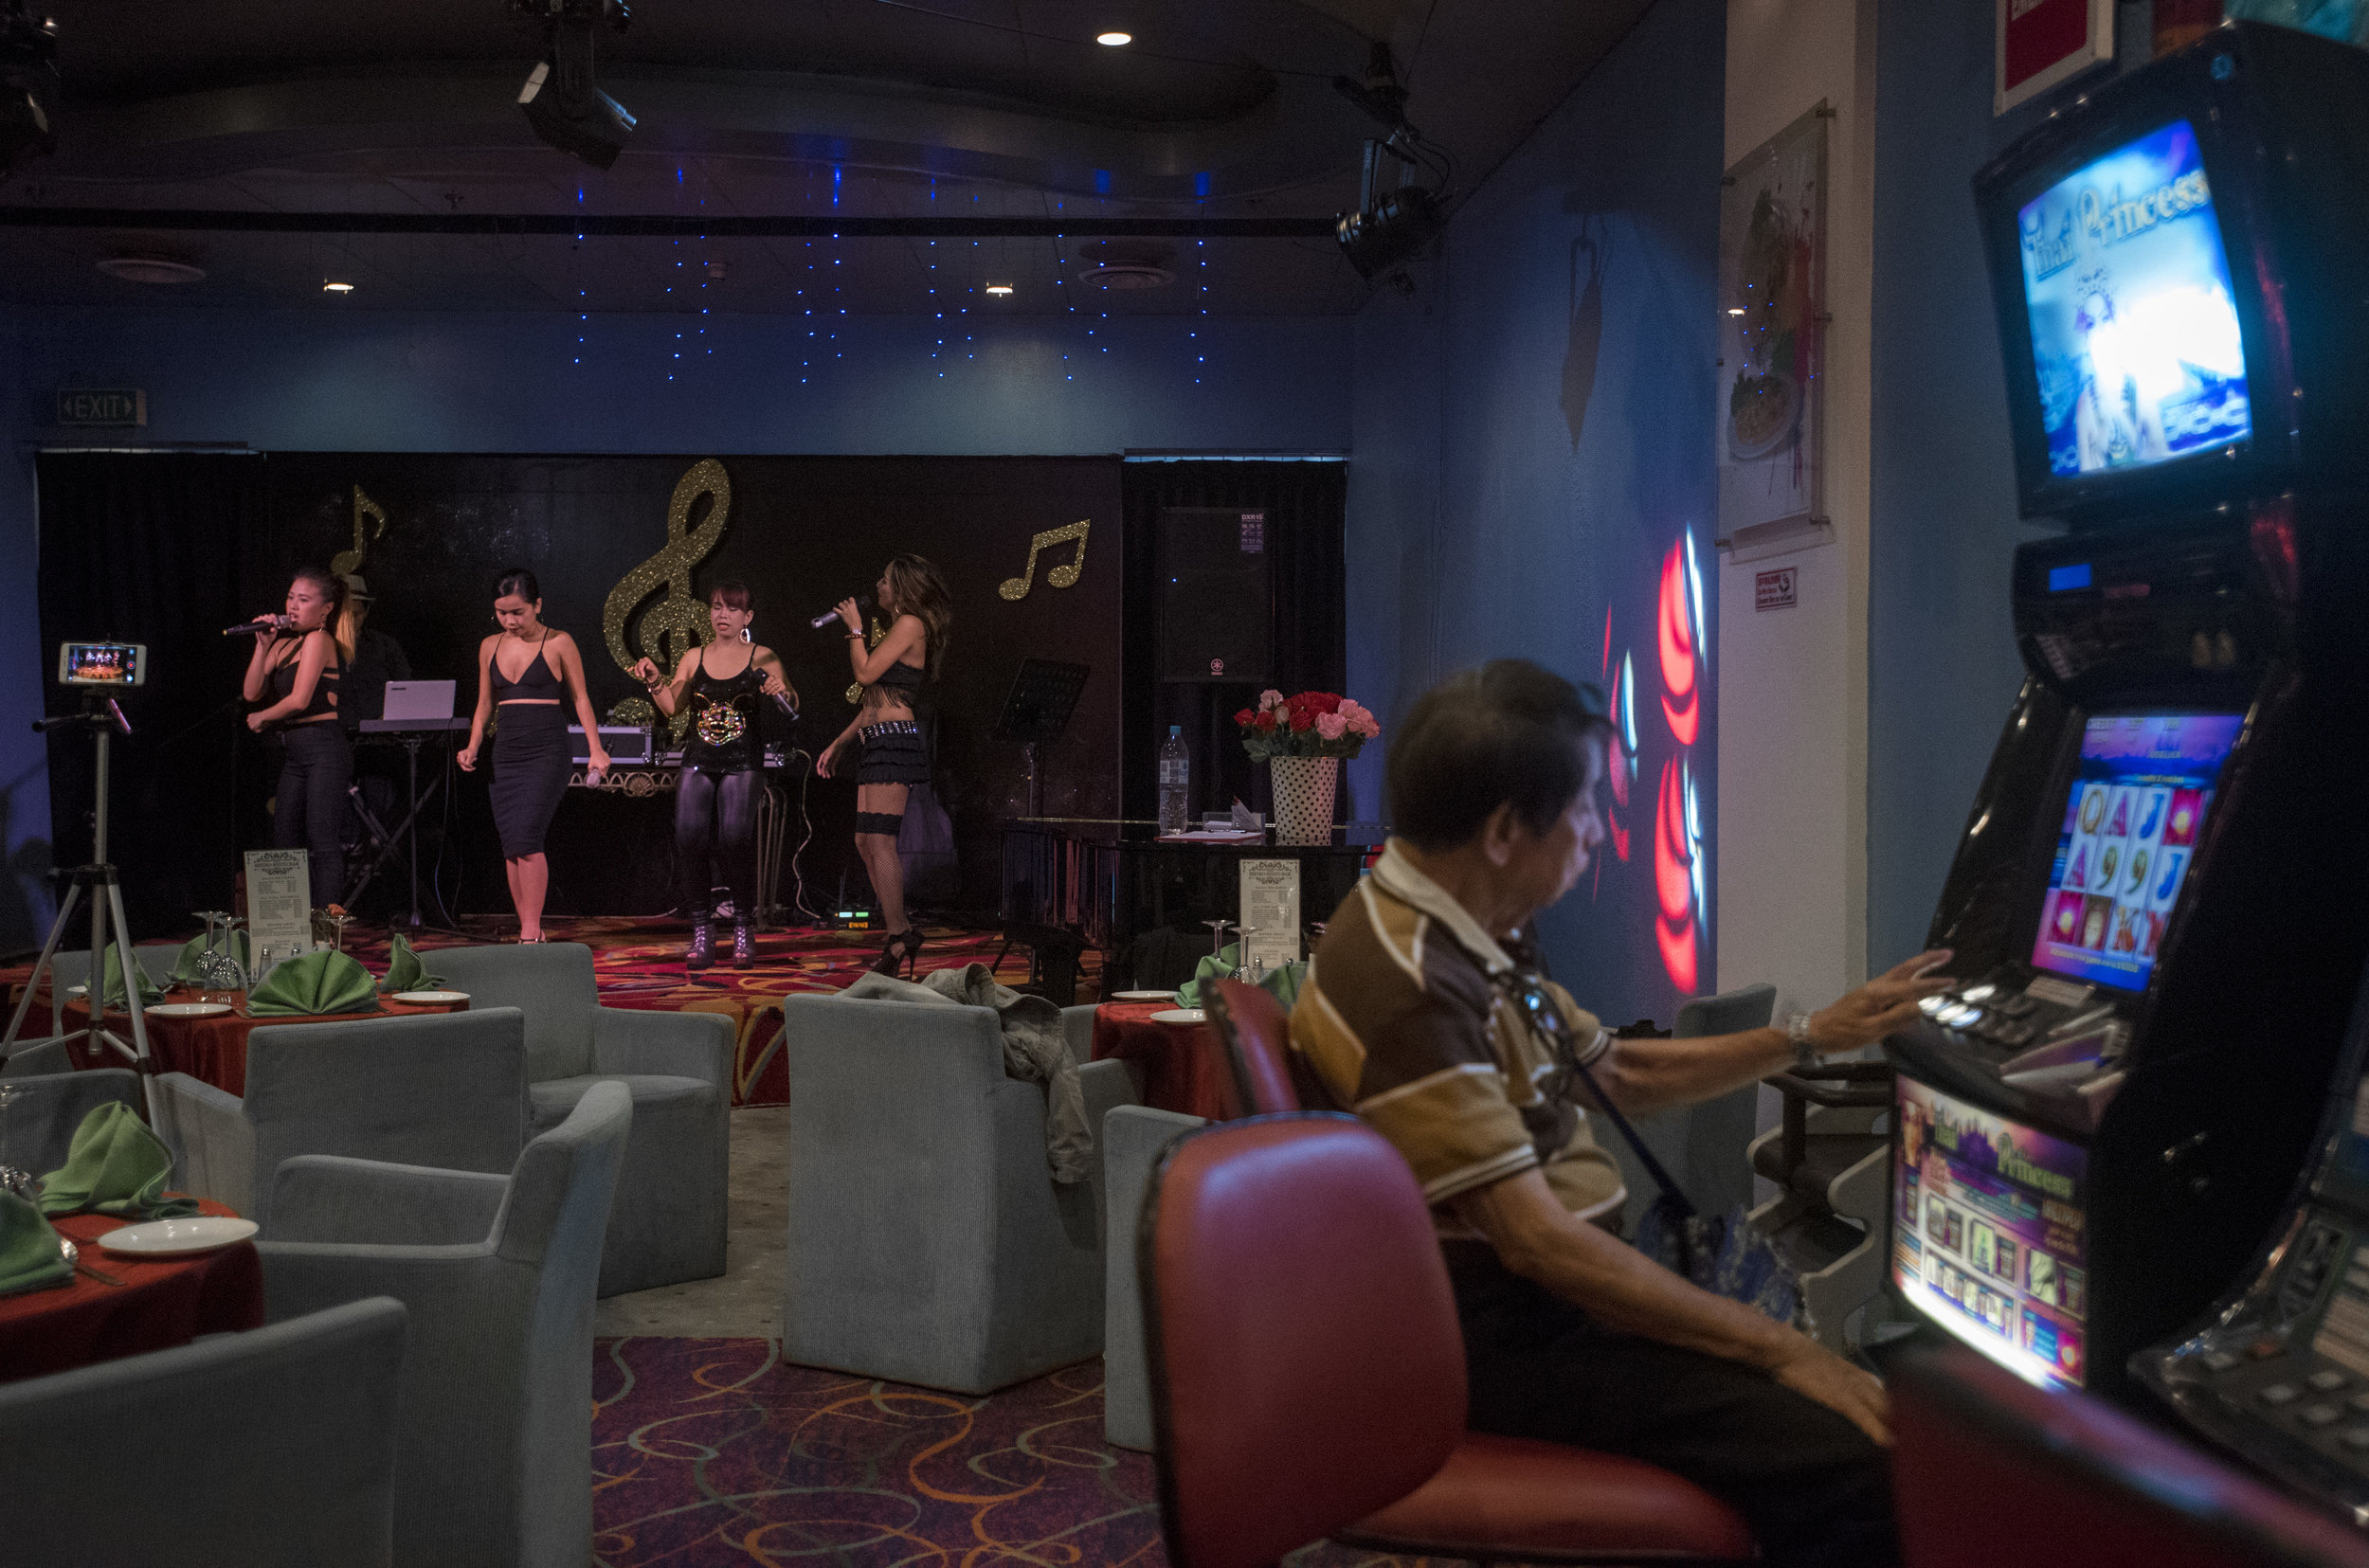 A group of female singers perform in the bistro as a man tries his luck at a jackpot machine on board the M/V Amusement World, March 15, 2018.